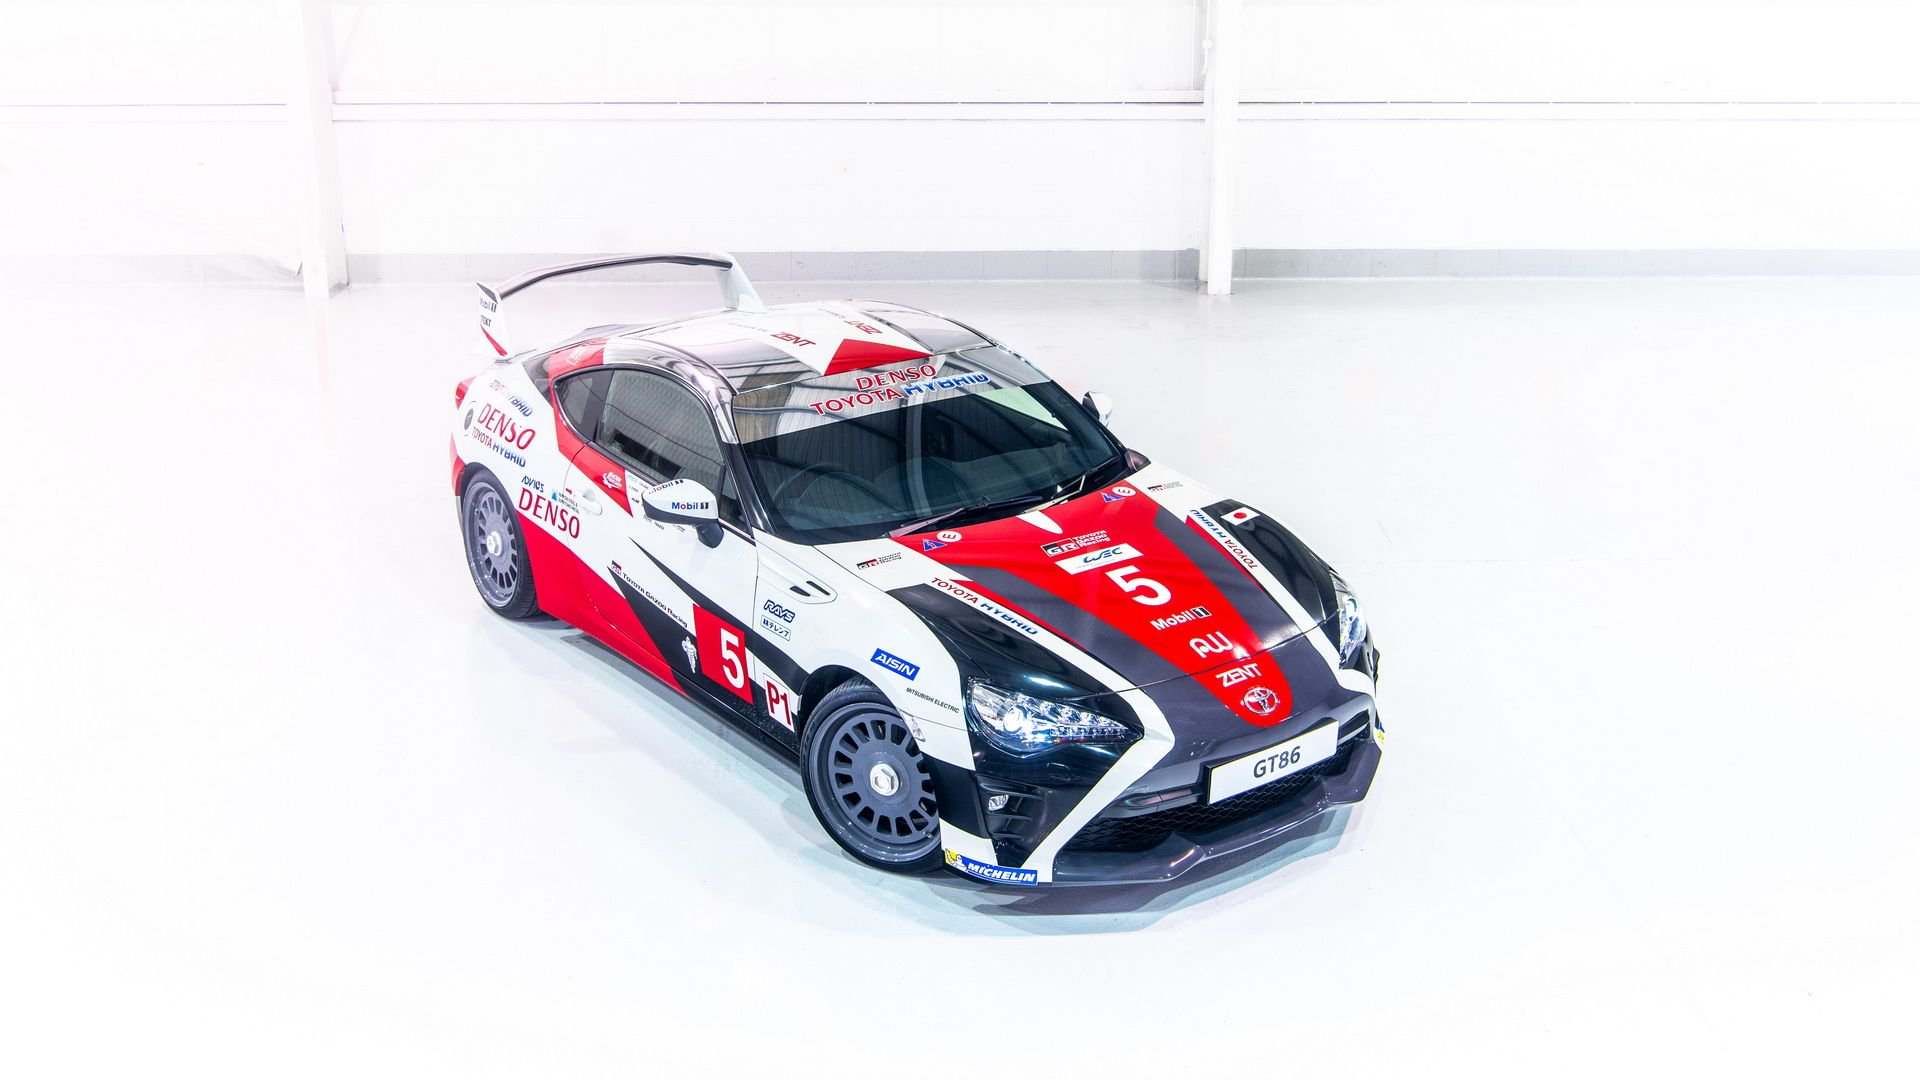 toyota-gt86-heritage-livery-24-hours-of-le-mans-23